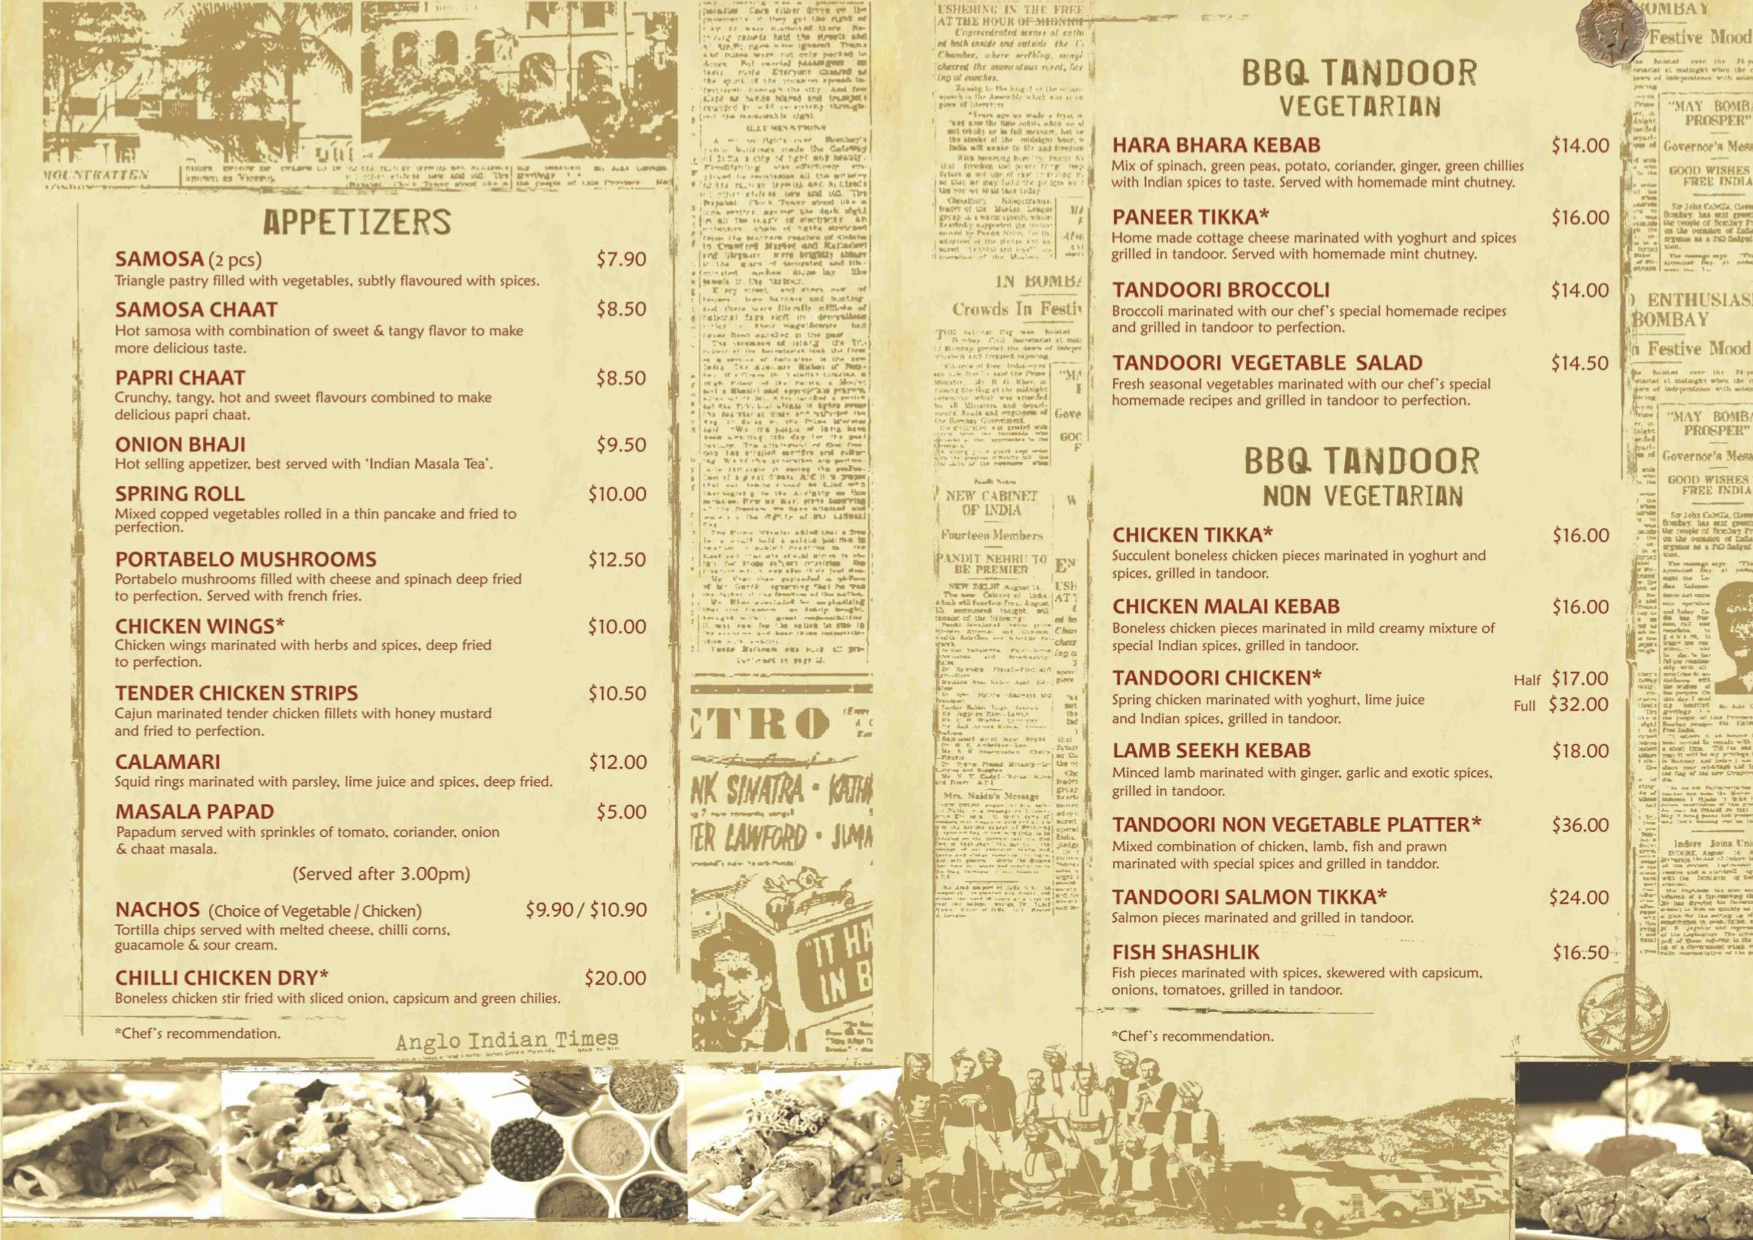 Angli Indian Cafe & Bar - Food Menu Pg2 - TREAT